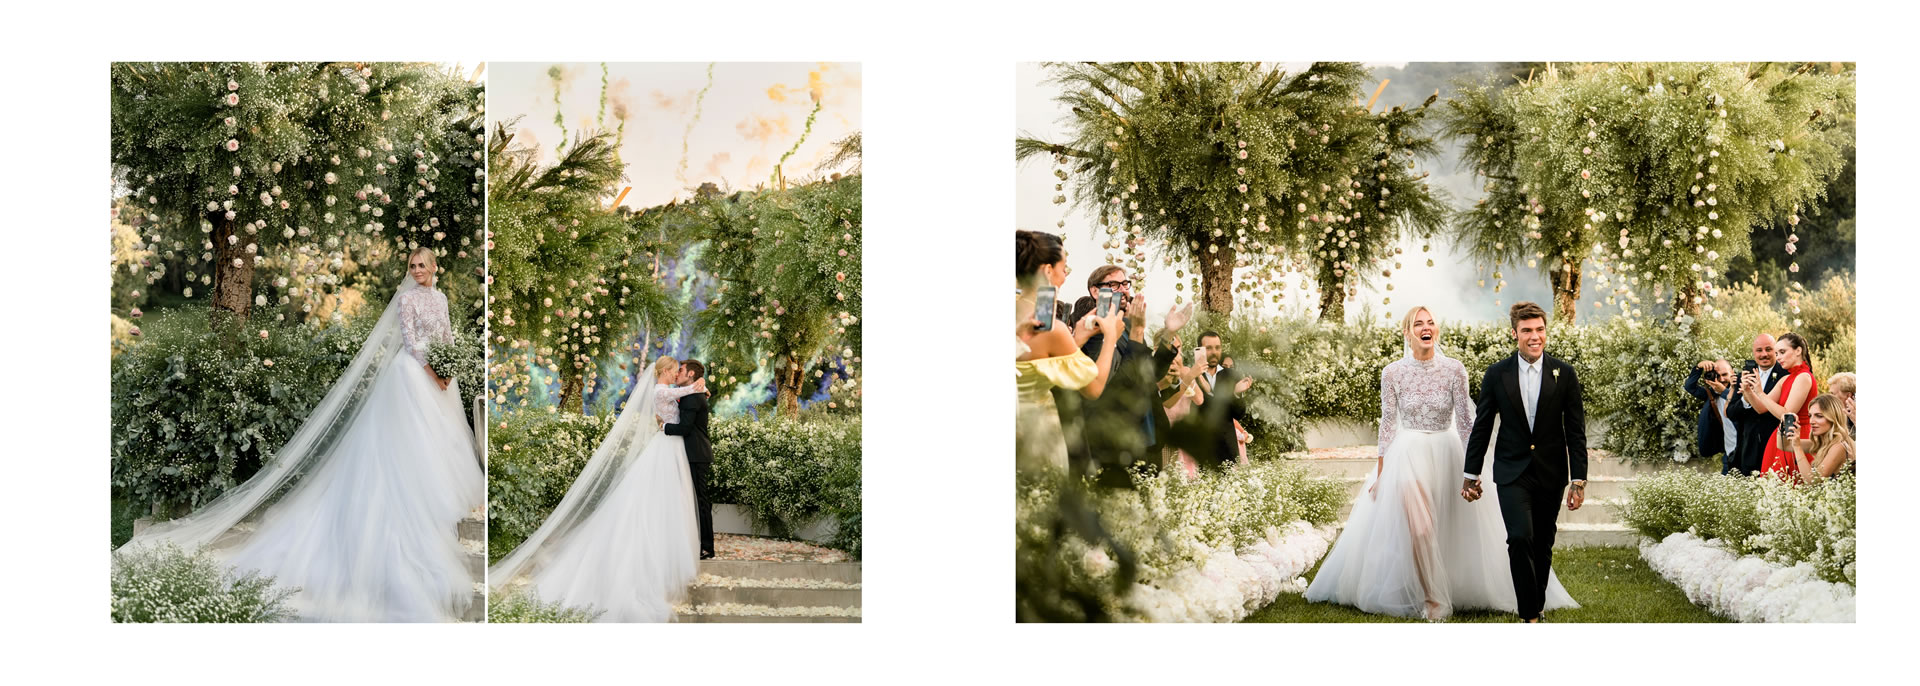 - 26 :: BEST OF 2018 WEDDING: A COLLECTION TO TELL ONE YEAR STORY :: Luxury wedding photography - 25 ::  - 26